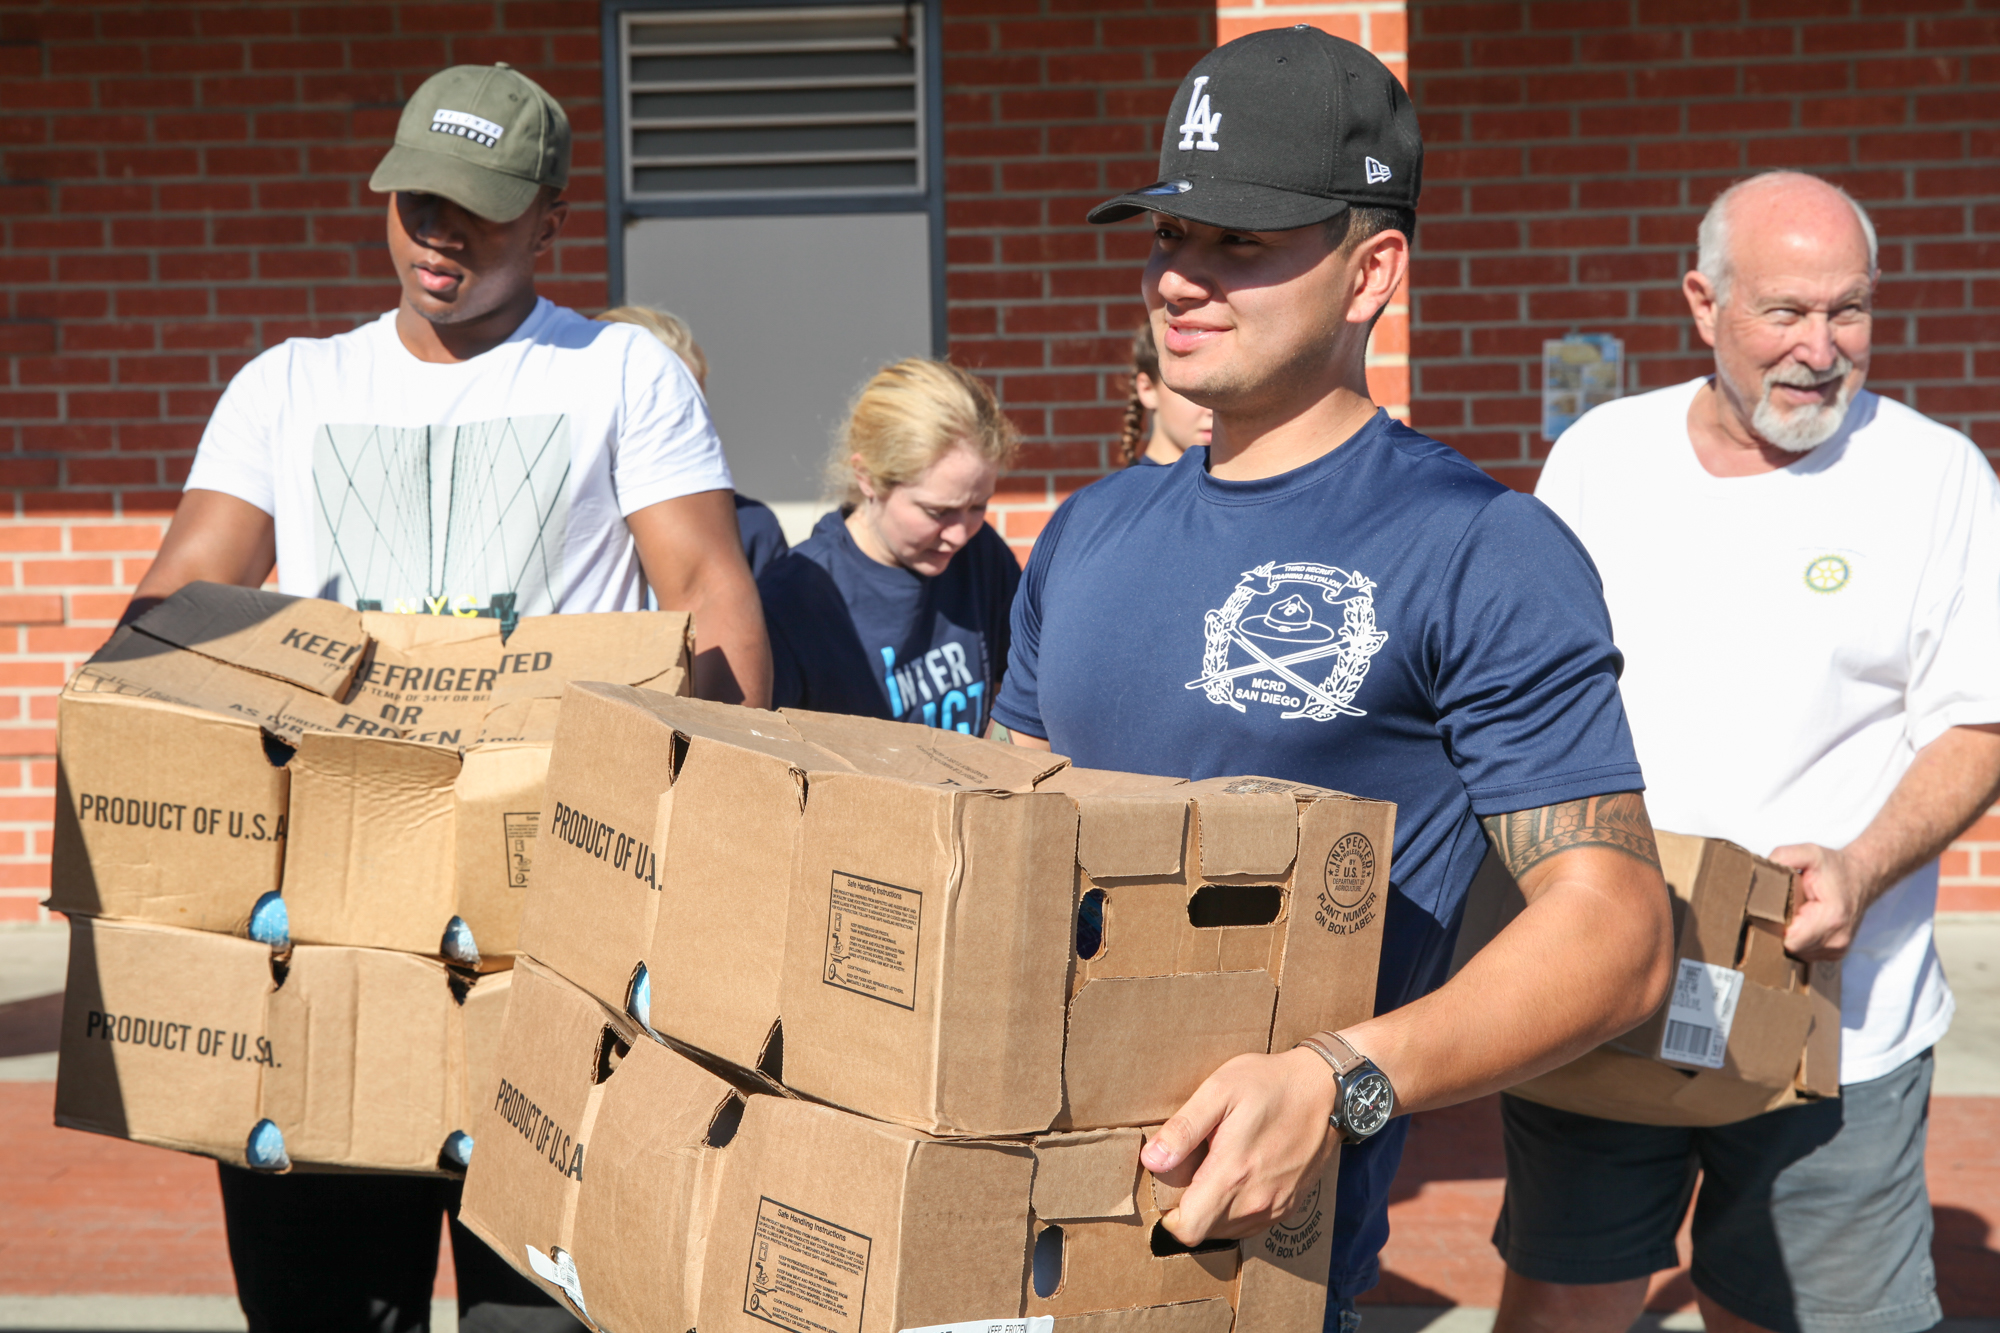 Marcos Vivas, of Camp Pendleton's 1st Battalion, 11th Marines, helps load food donations during the Rotary Club's event on Nov. 18. Photo: Allison Jarrell